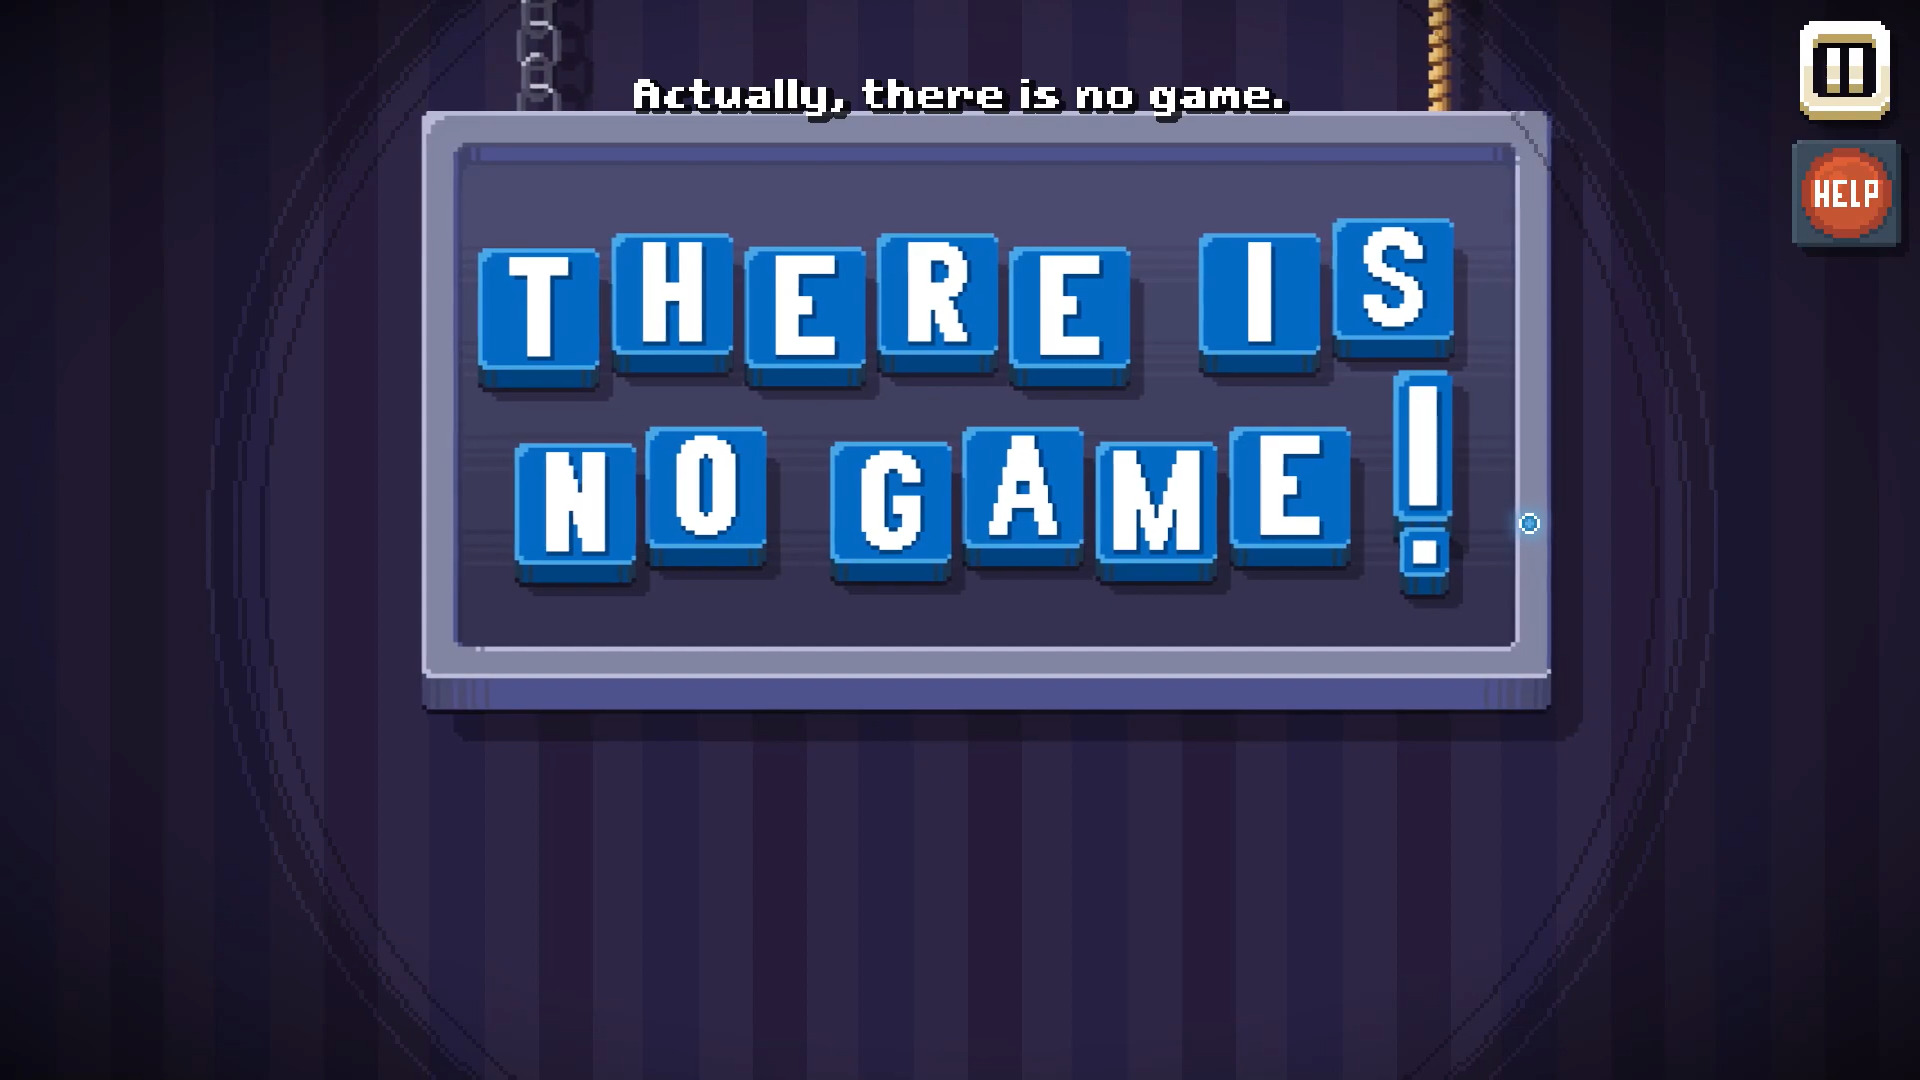 Game (There Is No Game: Wrong Dimension)